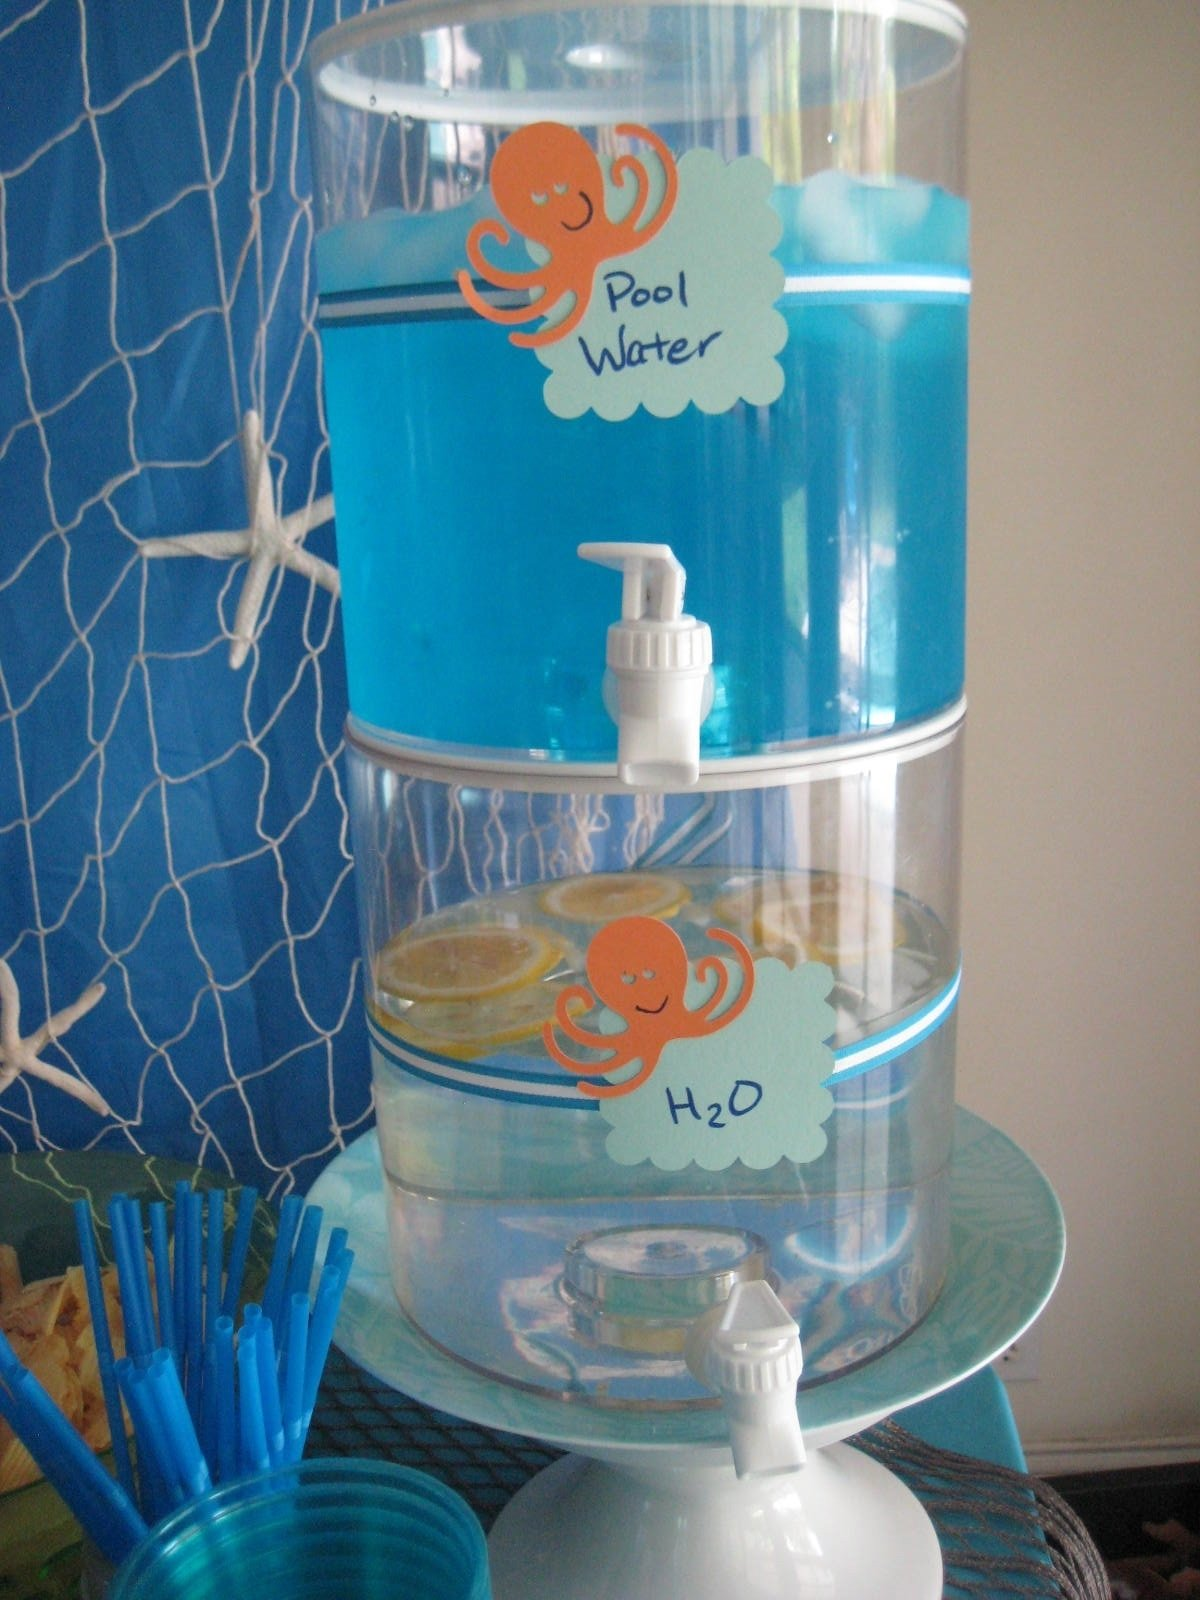 10 Great Ideas For A Pool Party creative party ideascheryl pool party 2020